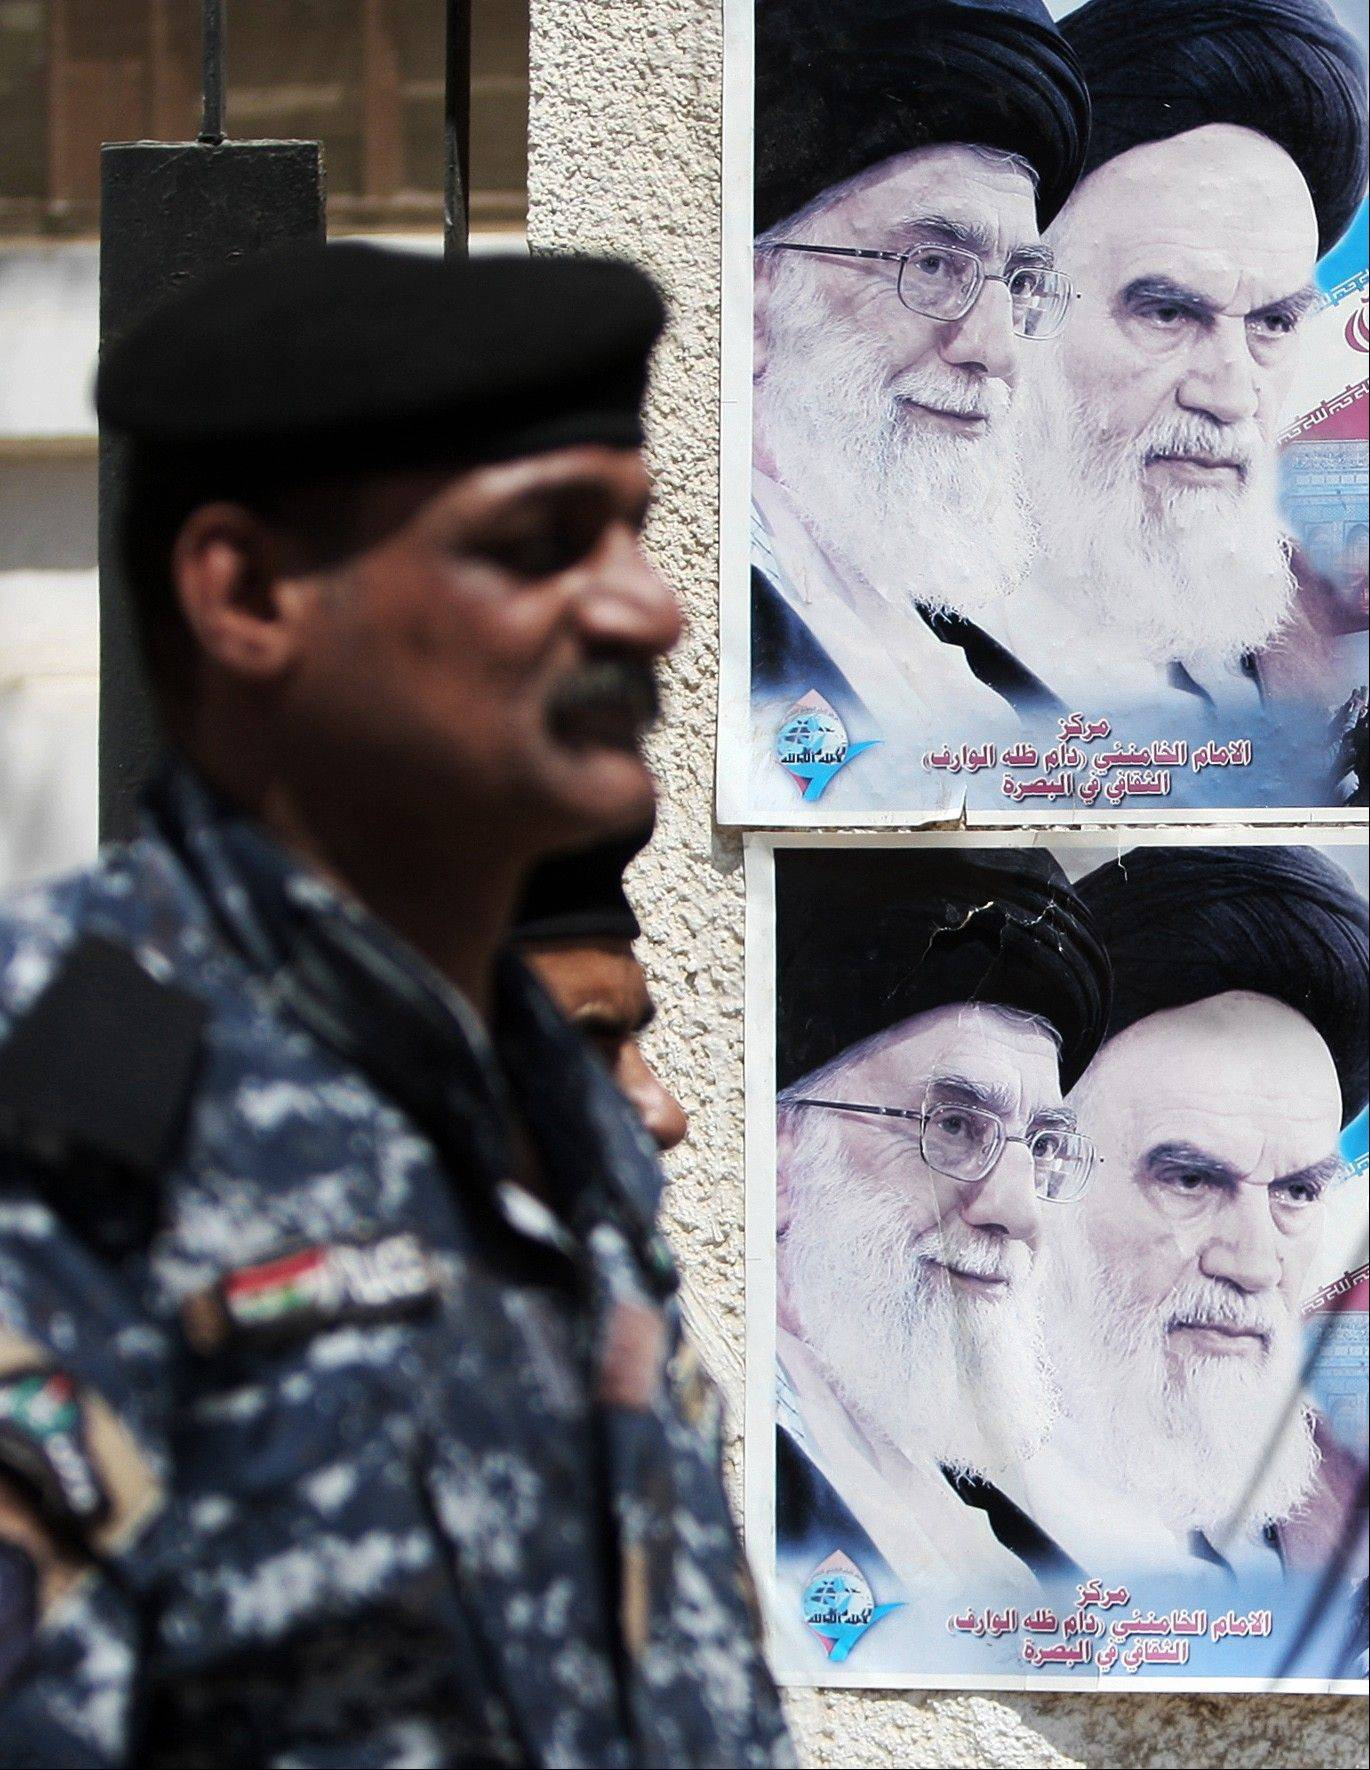 An Iraqi soldier stands guard next to a poster depicting late Iran's spiritual leaders Ayatollah Khomeini, right, and Ayatollah Khamenei, left, in Basra, 340 miles southeast of Baghdad, Iraq.